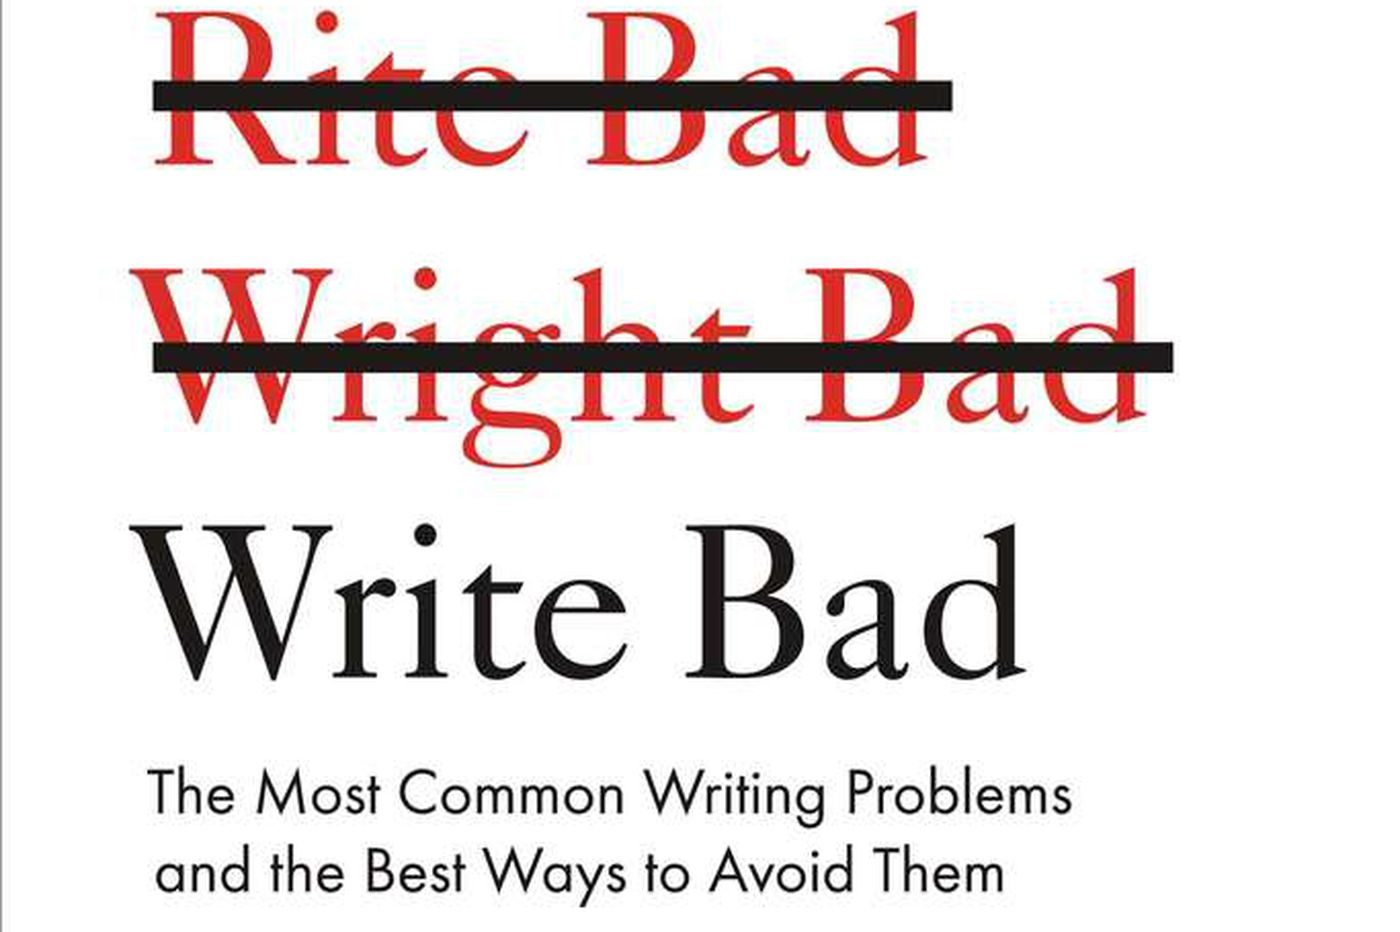 To improve writing, pay attention